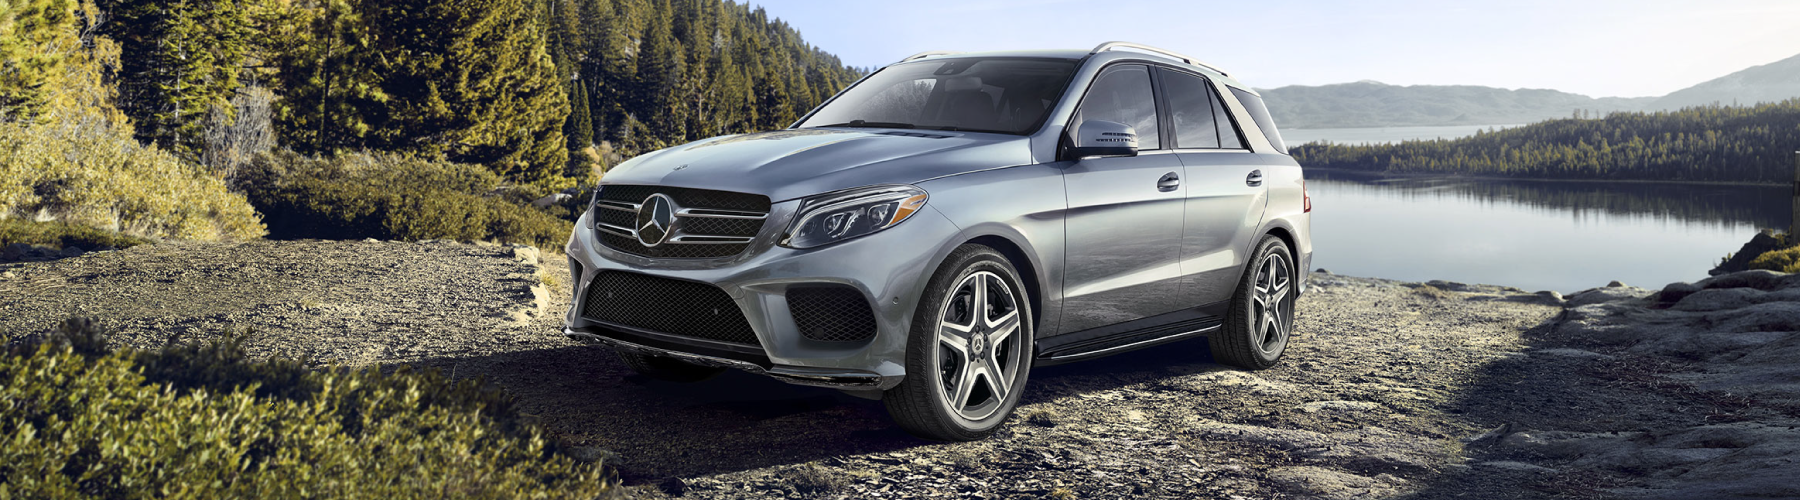 Merceds-Benz SUV